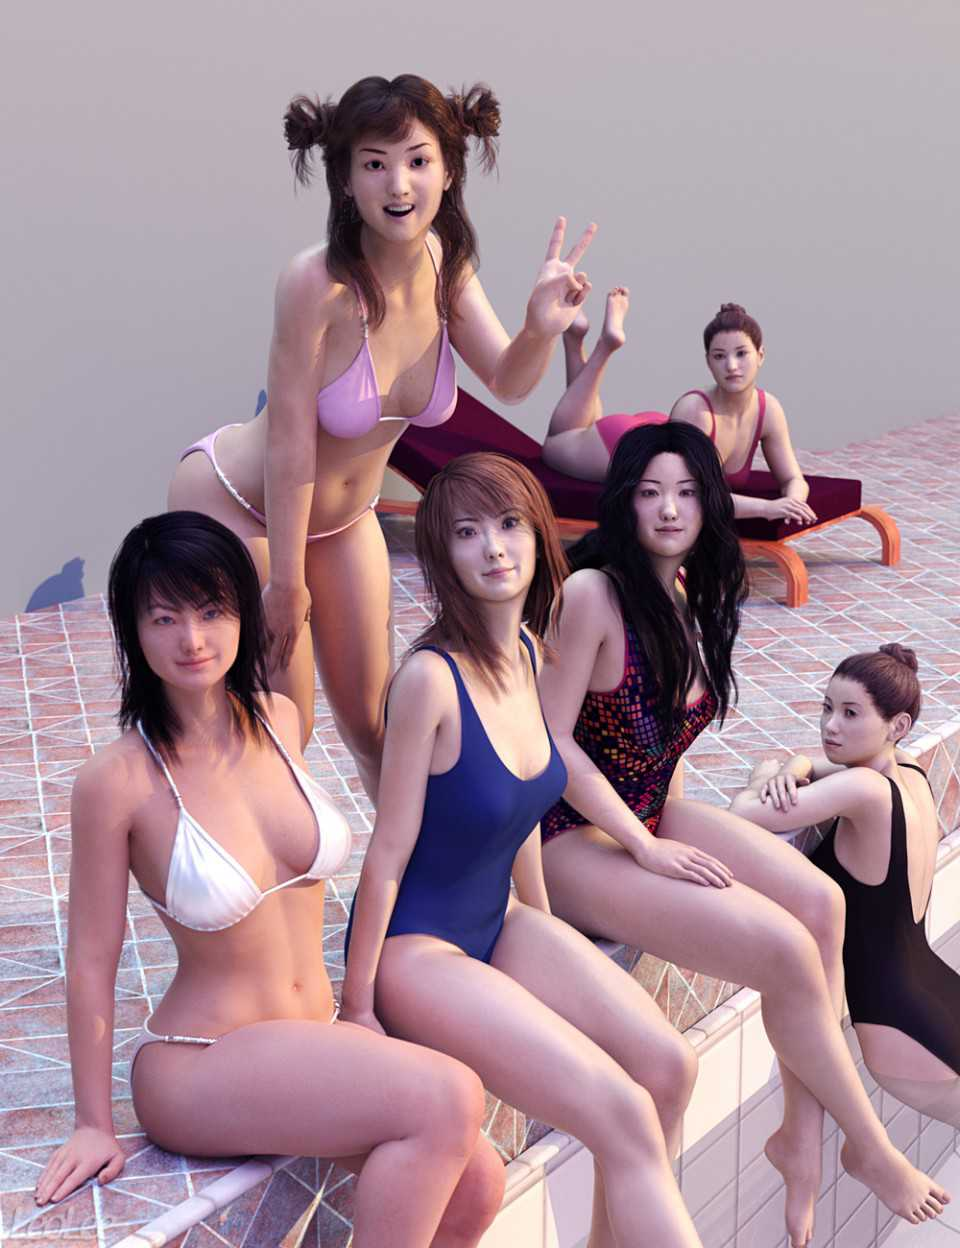 Japanese Face and Body Shapes for Genesis 3 and 8 Female